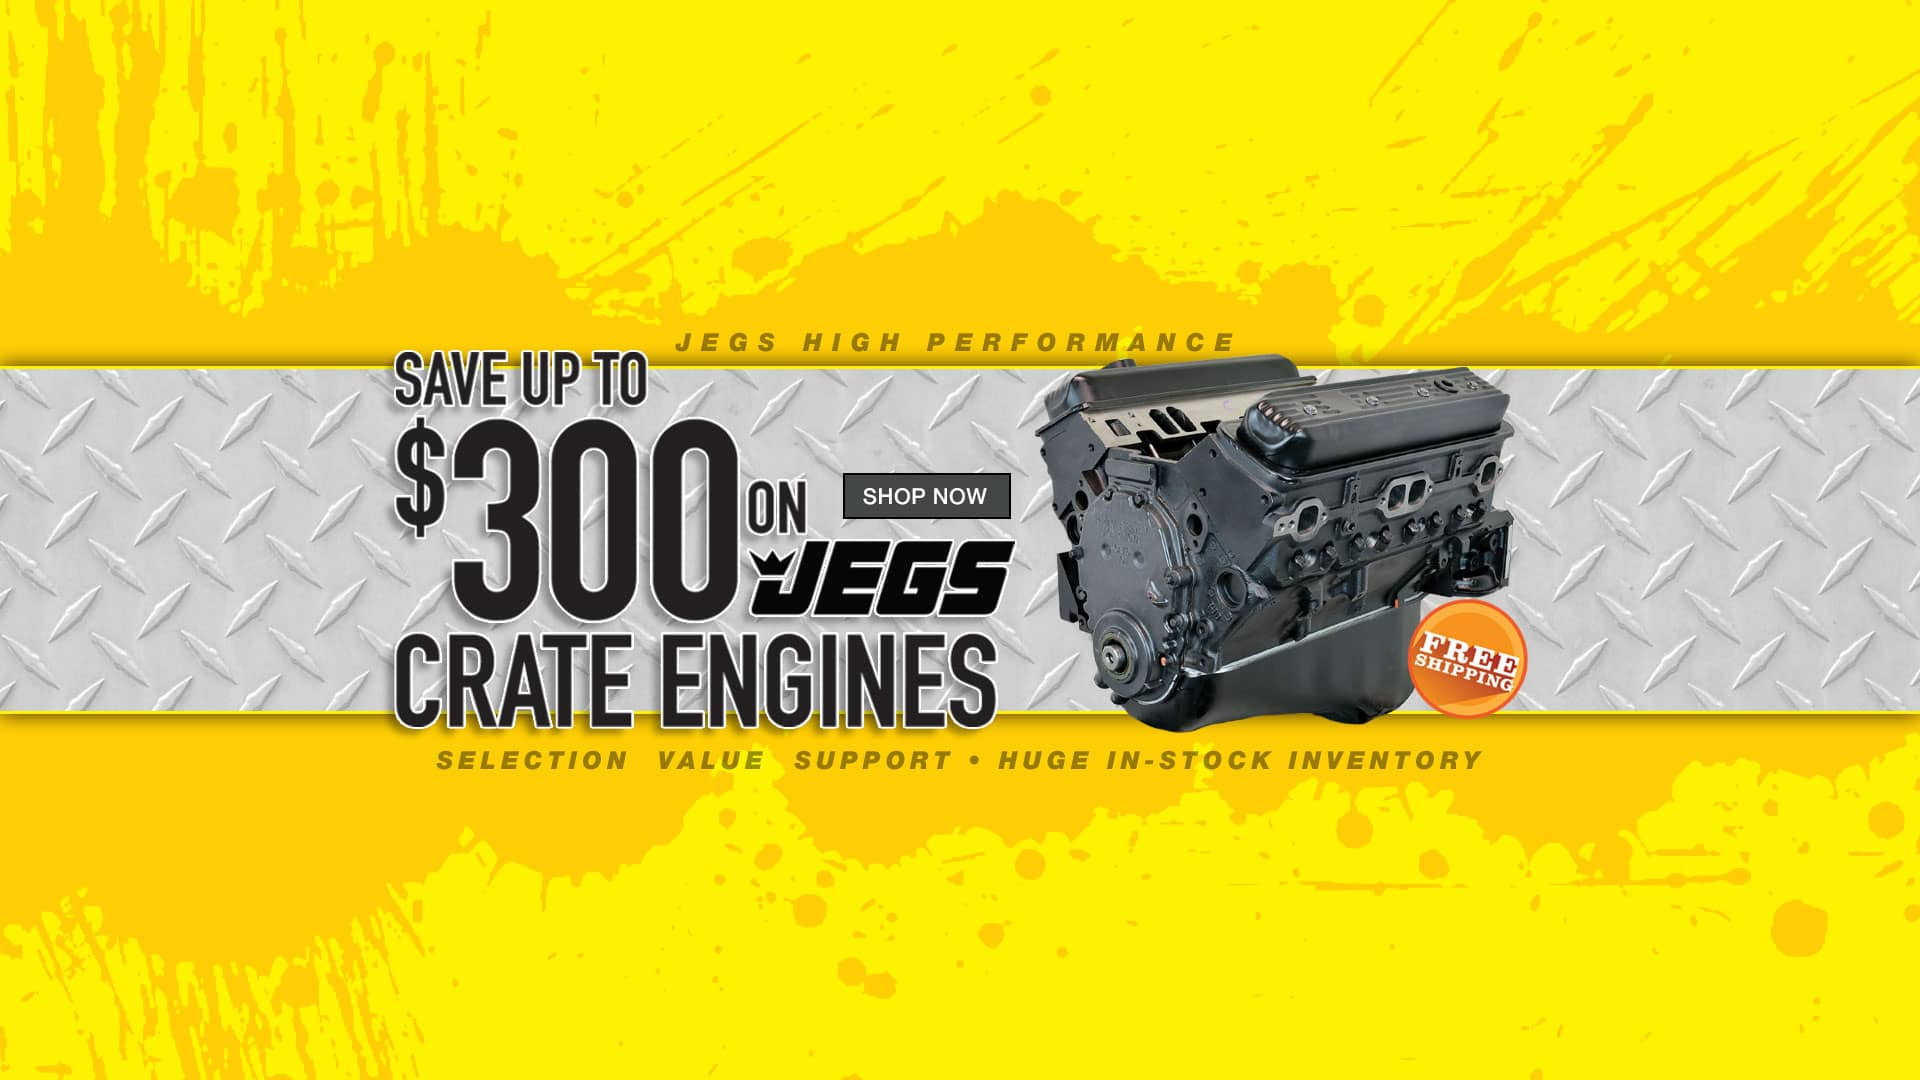 JEGS Crate Engine Save Up to $300